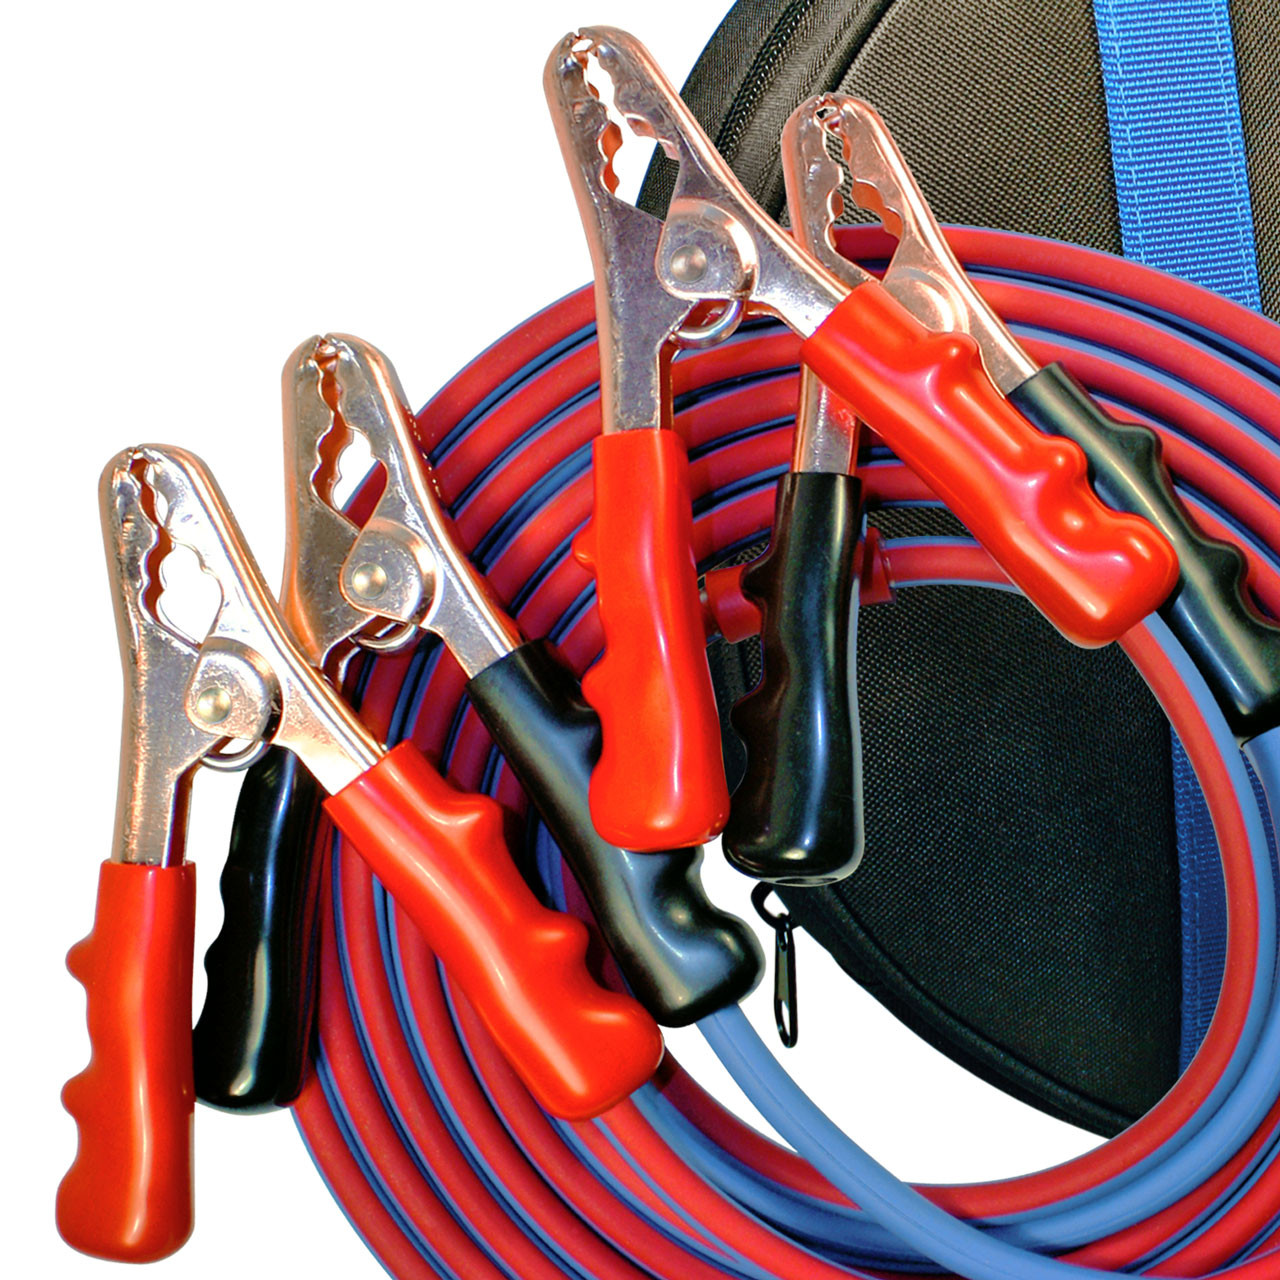 Made in the USA exclusively by Polar Wire Products